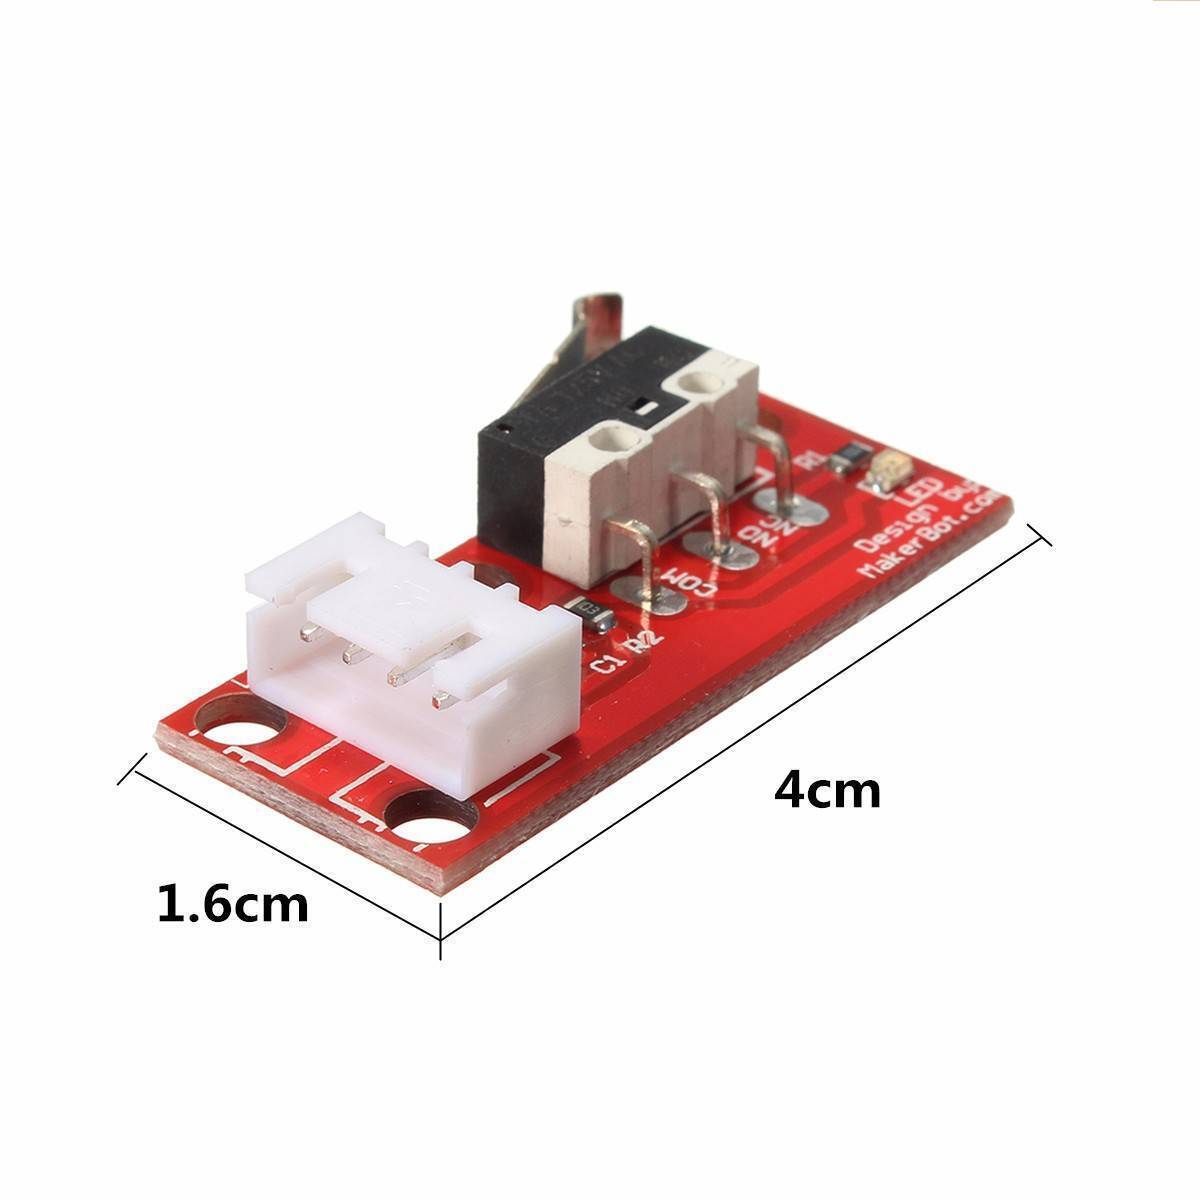 Mechanical End Stop Endstop Limit Switch With Cable For CNC 3D Printer RAMPS 1.4 in Pakistan